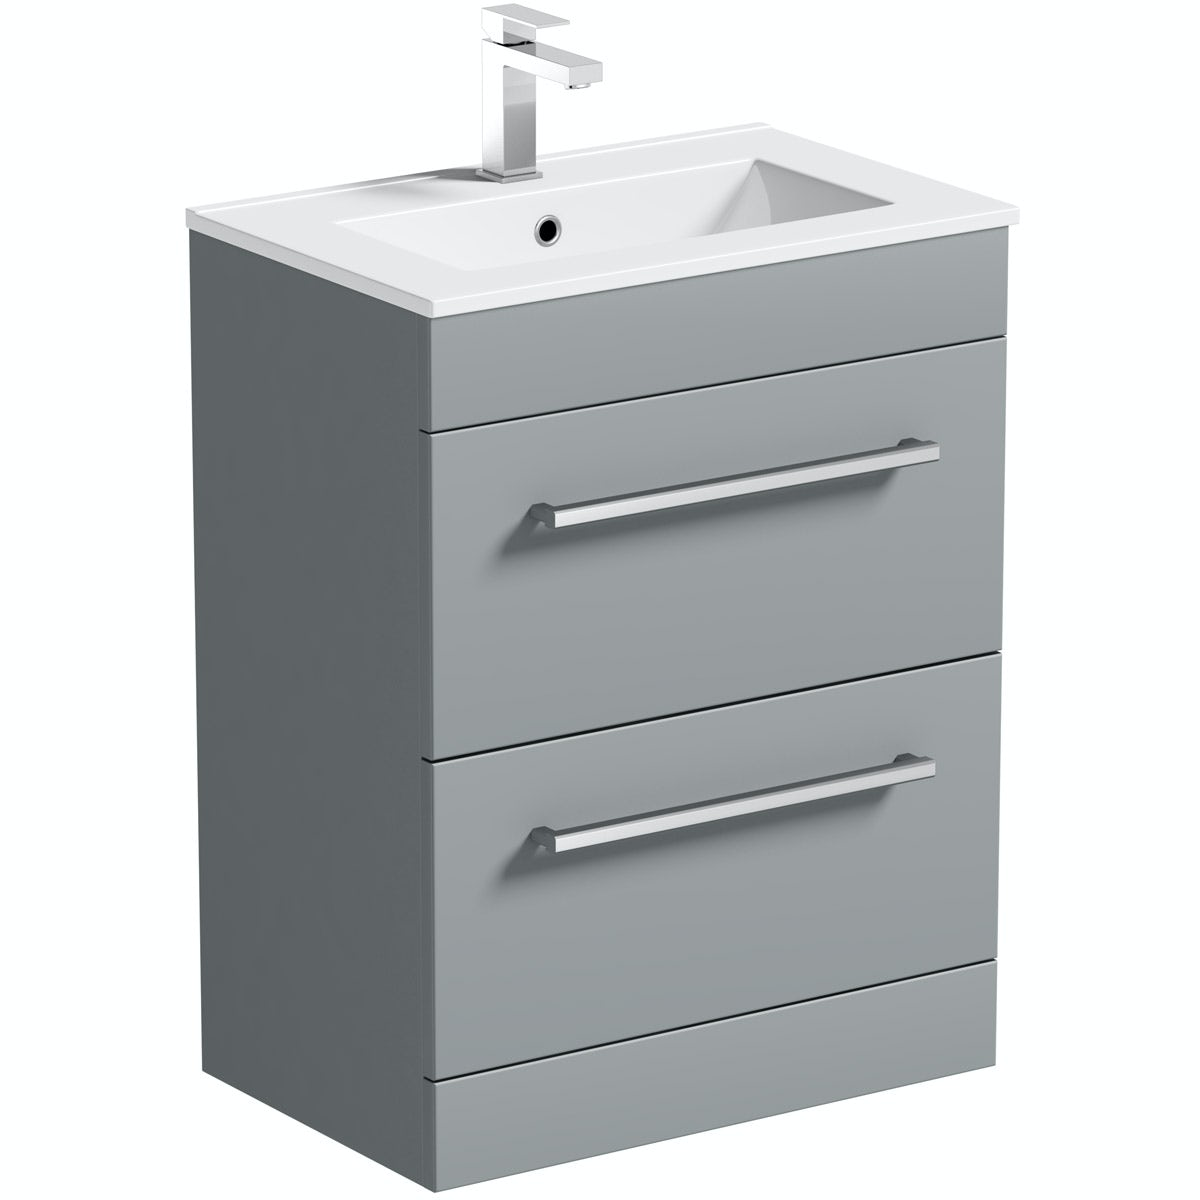 Orchard Derwent stone grey vanity drawer unit and basin 600mm